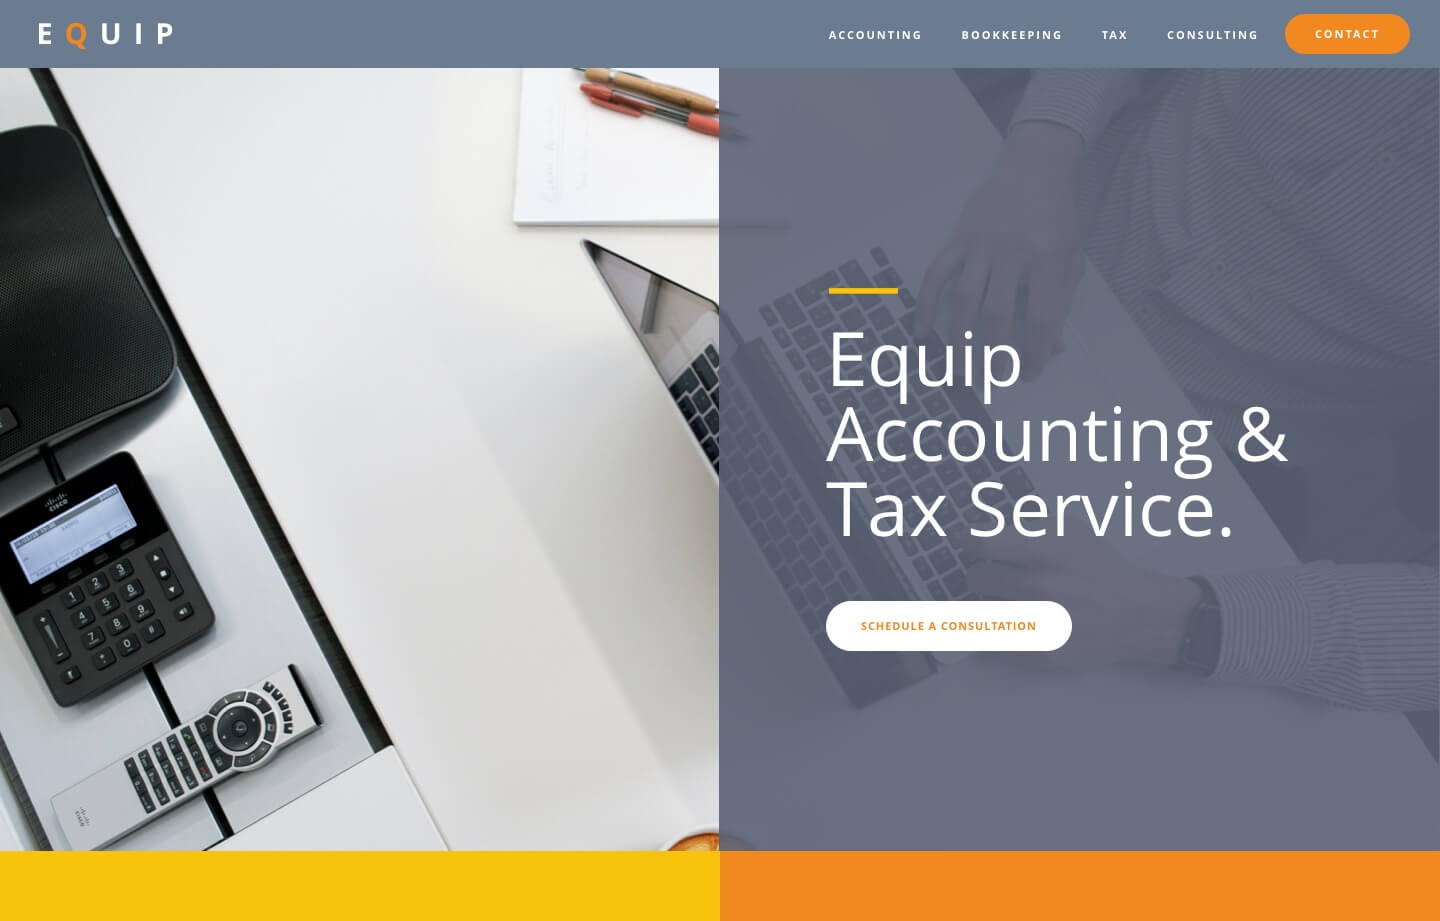 cpa and accounting firm website for equip accounting and tax service